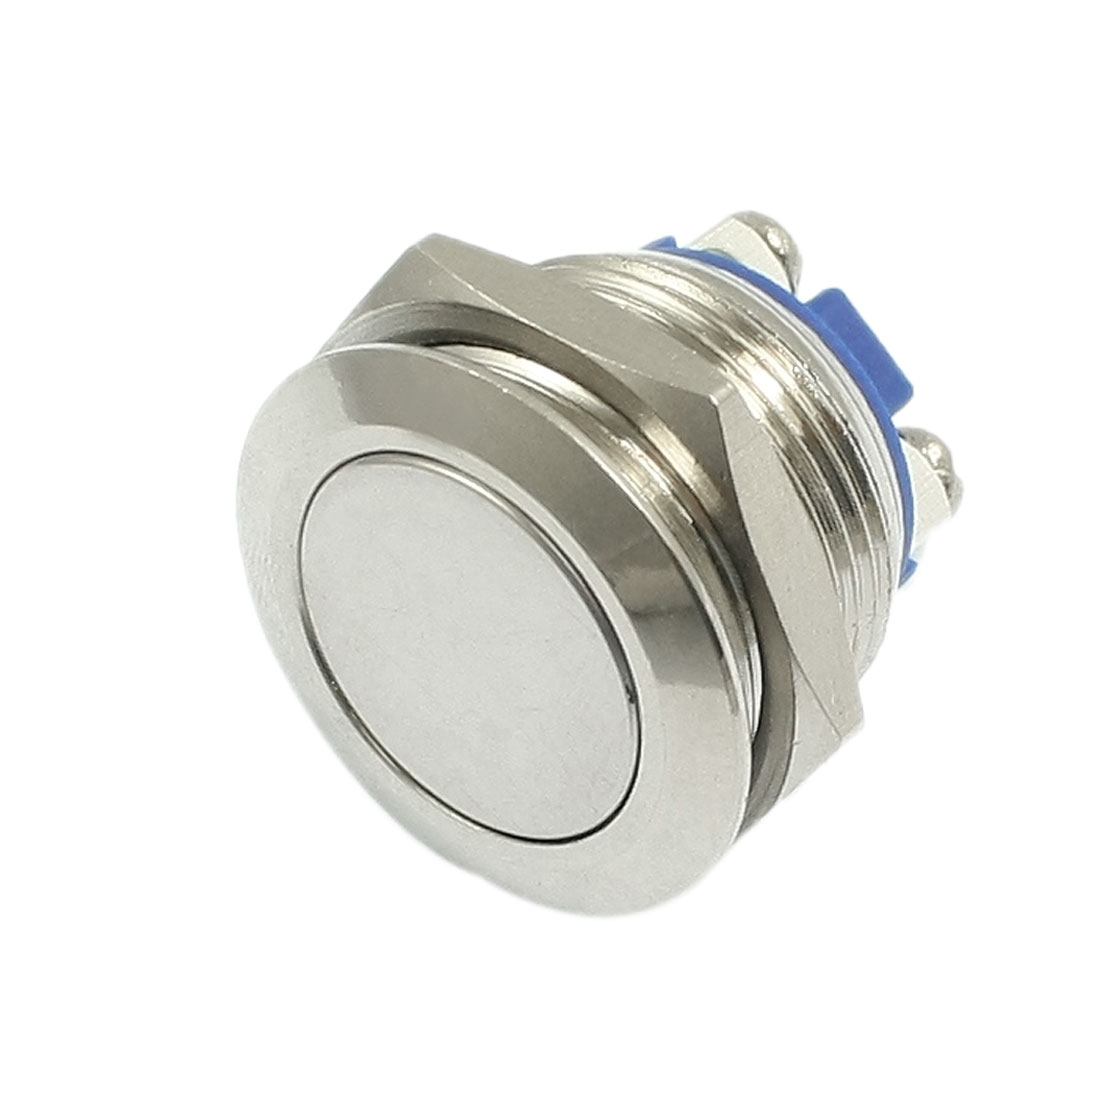 OFF-(ON) NO N/O 19mm Hole Flush Mount Metal Round Momentary Push Button Switch